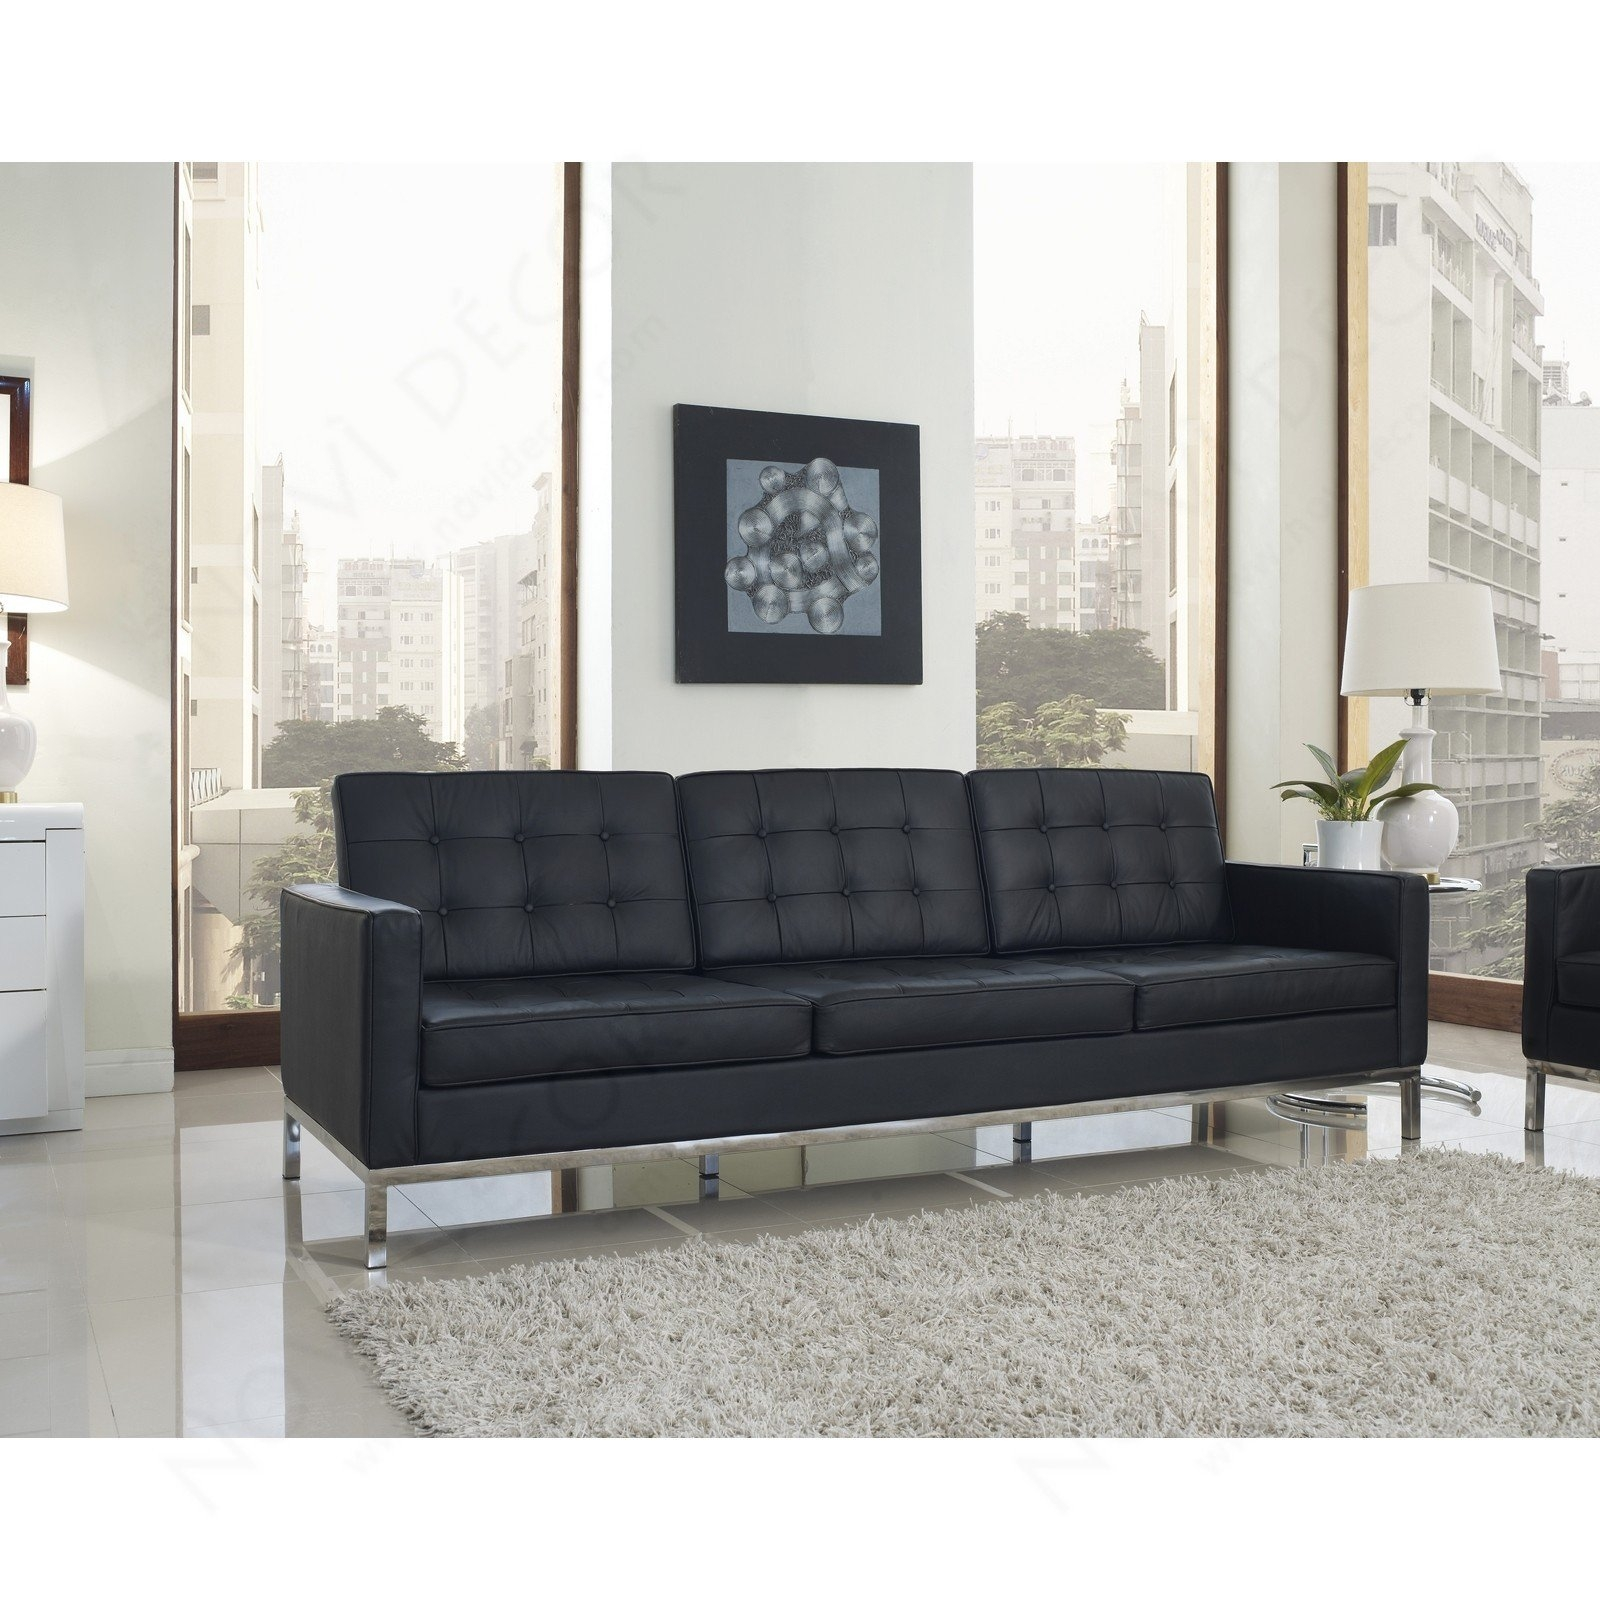 Florence Style Sofa Multiple Colors Designer Reproduction Regarding Florence Medium Sofas (Image 14 of 15)